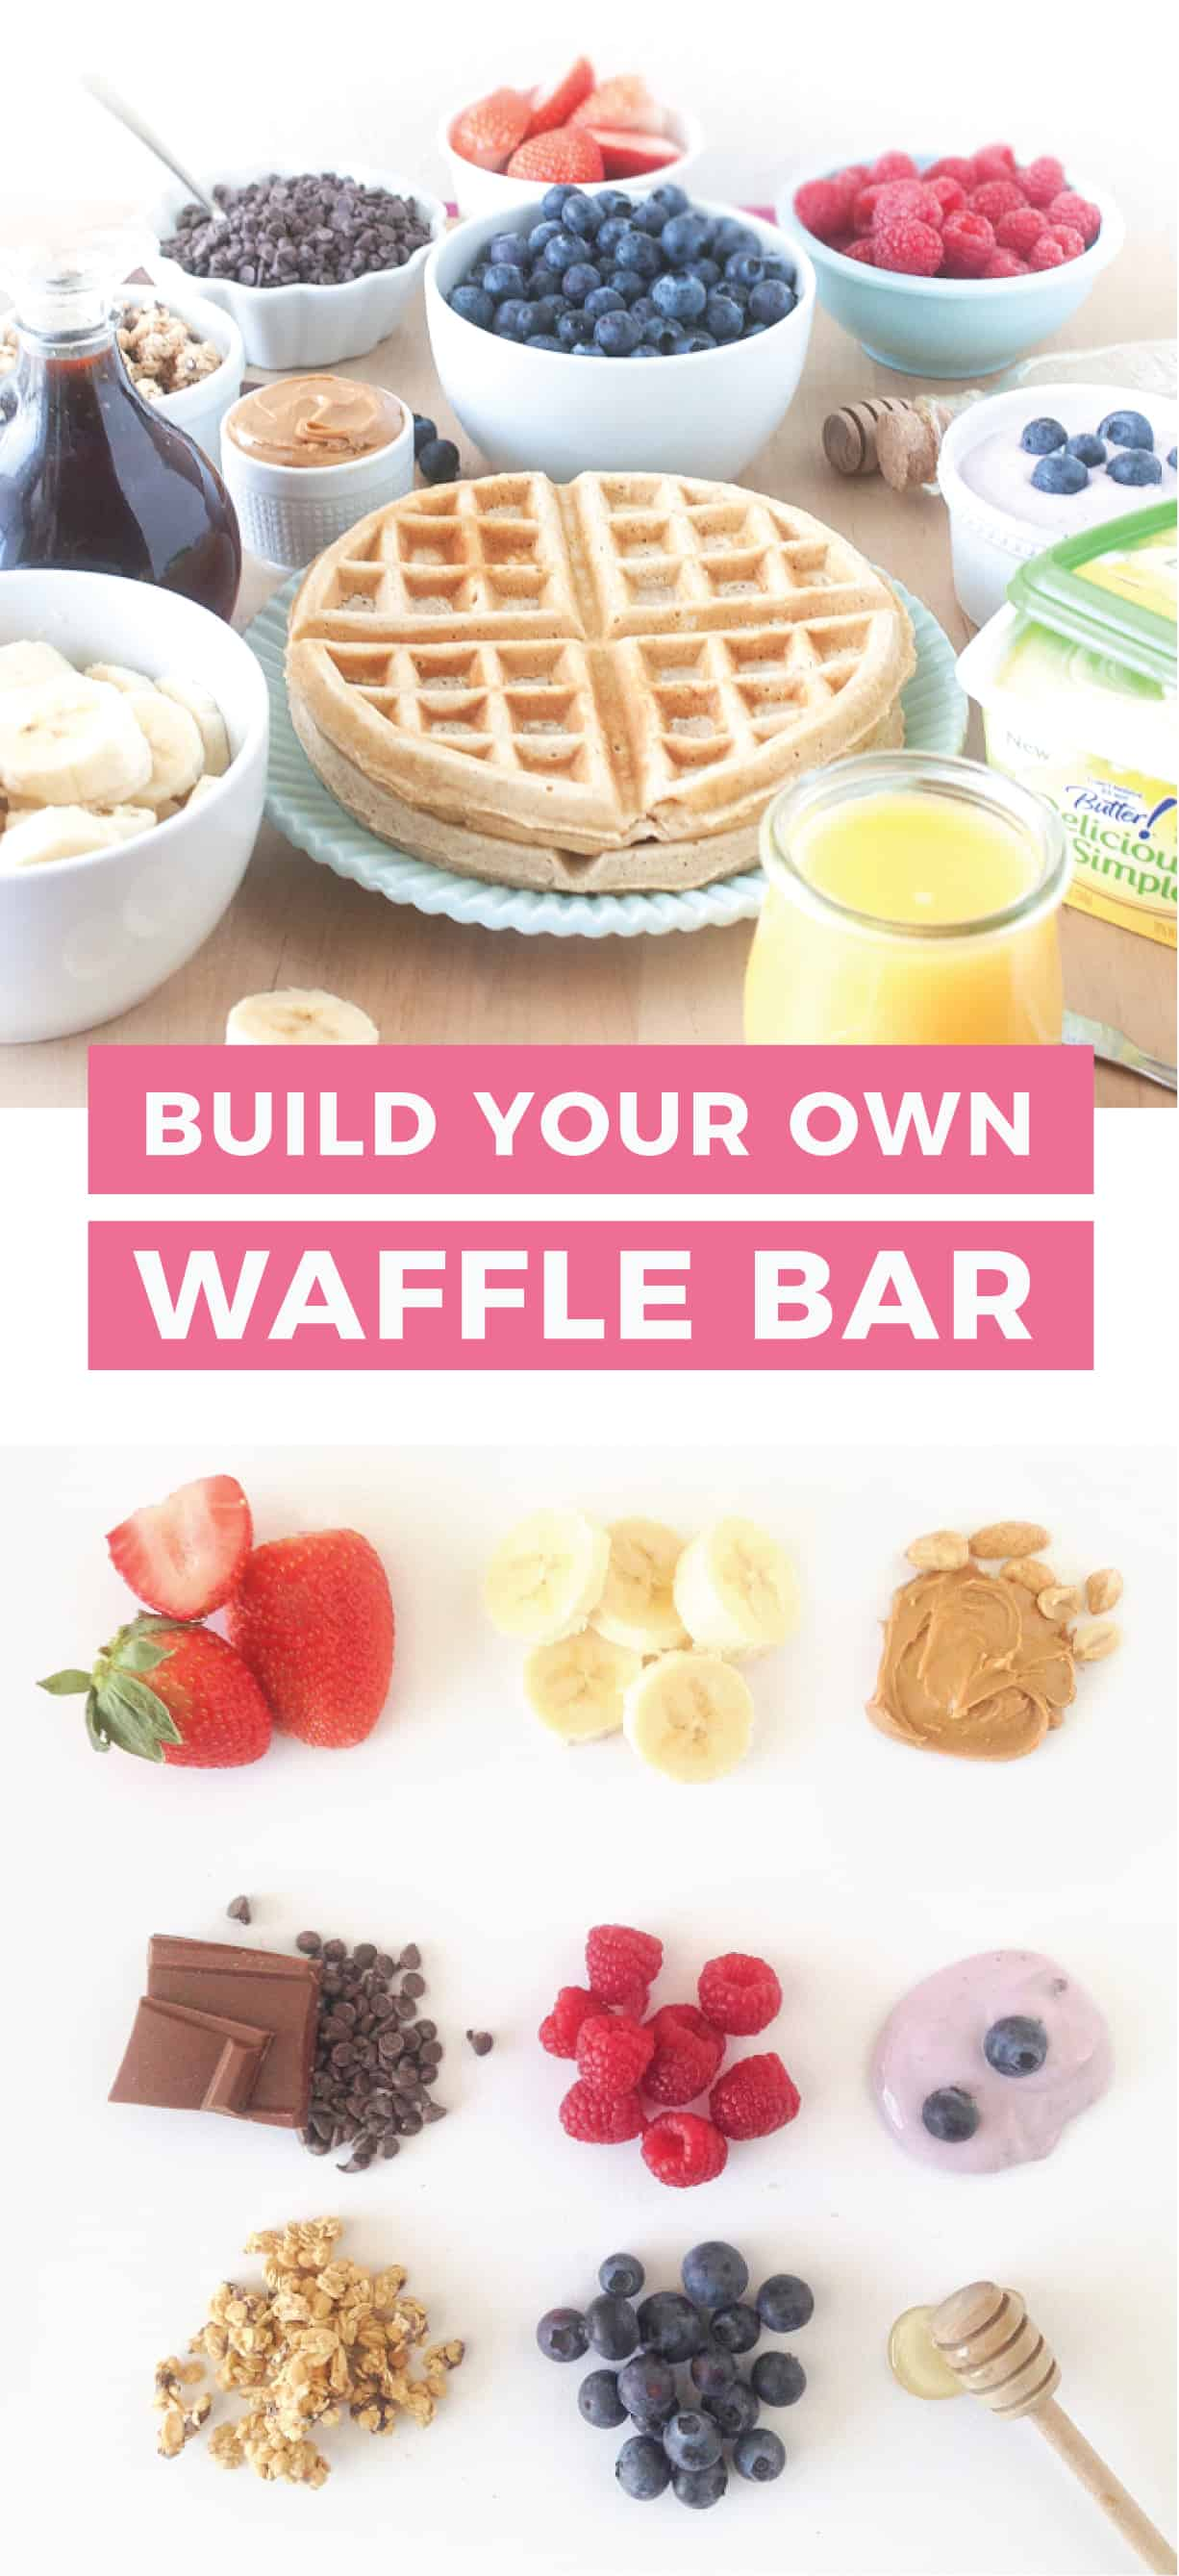 Build Your Own Waffle Bar!